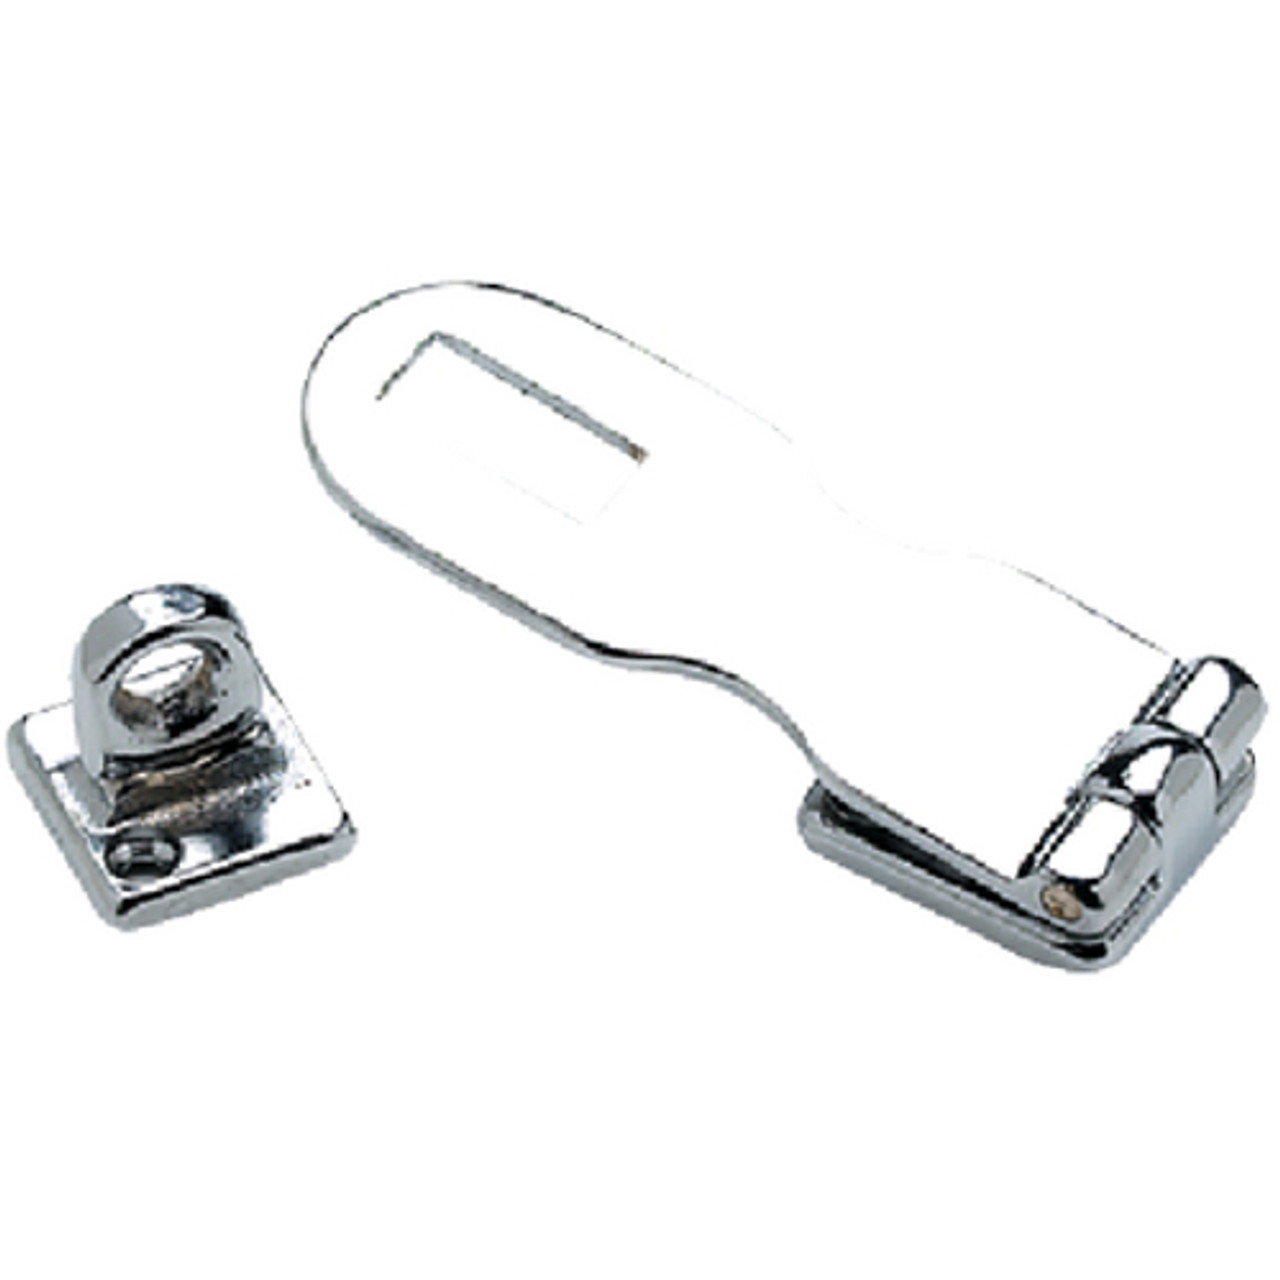 6 Inch Triple Chrome Plated Brass Grab Handle for Boats RVs and More